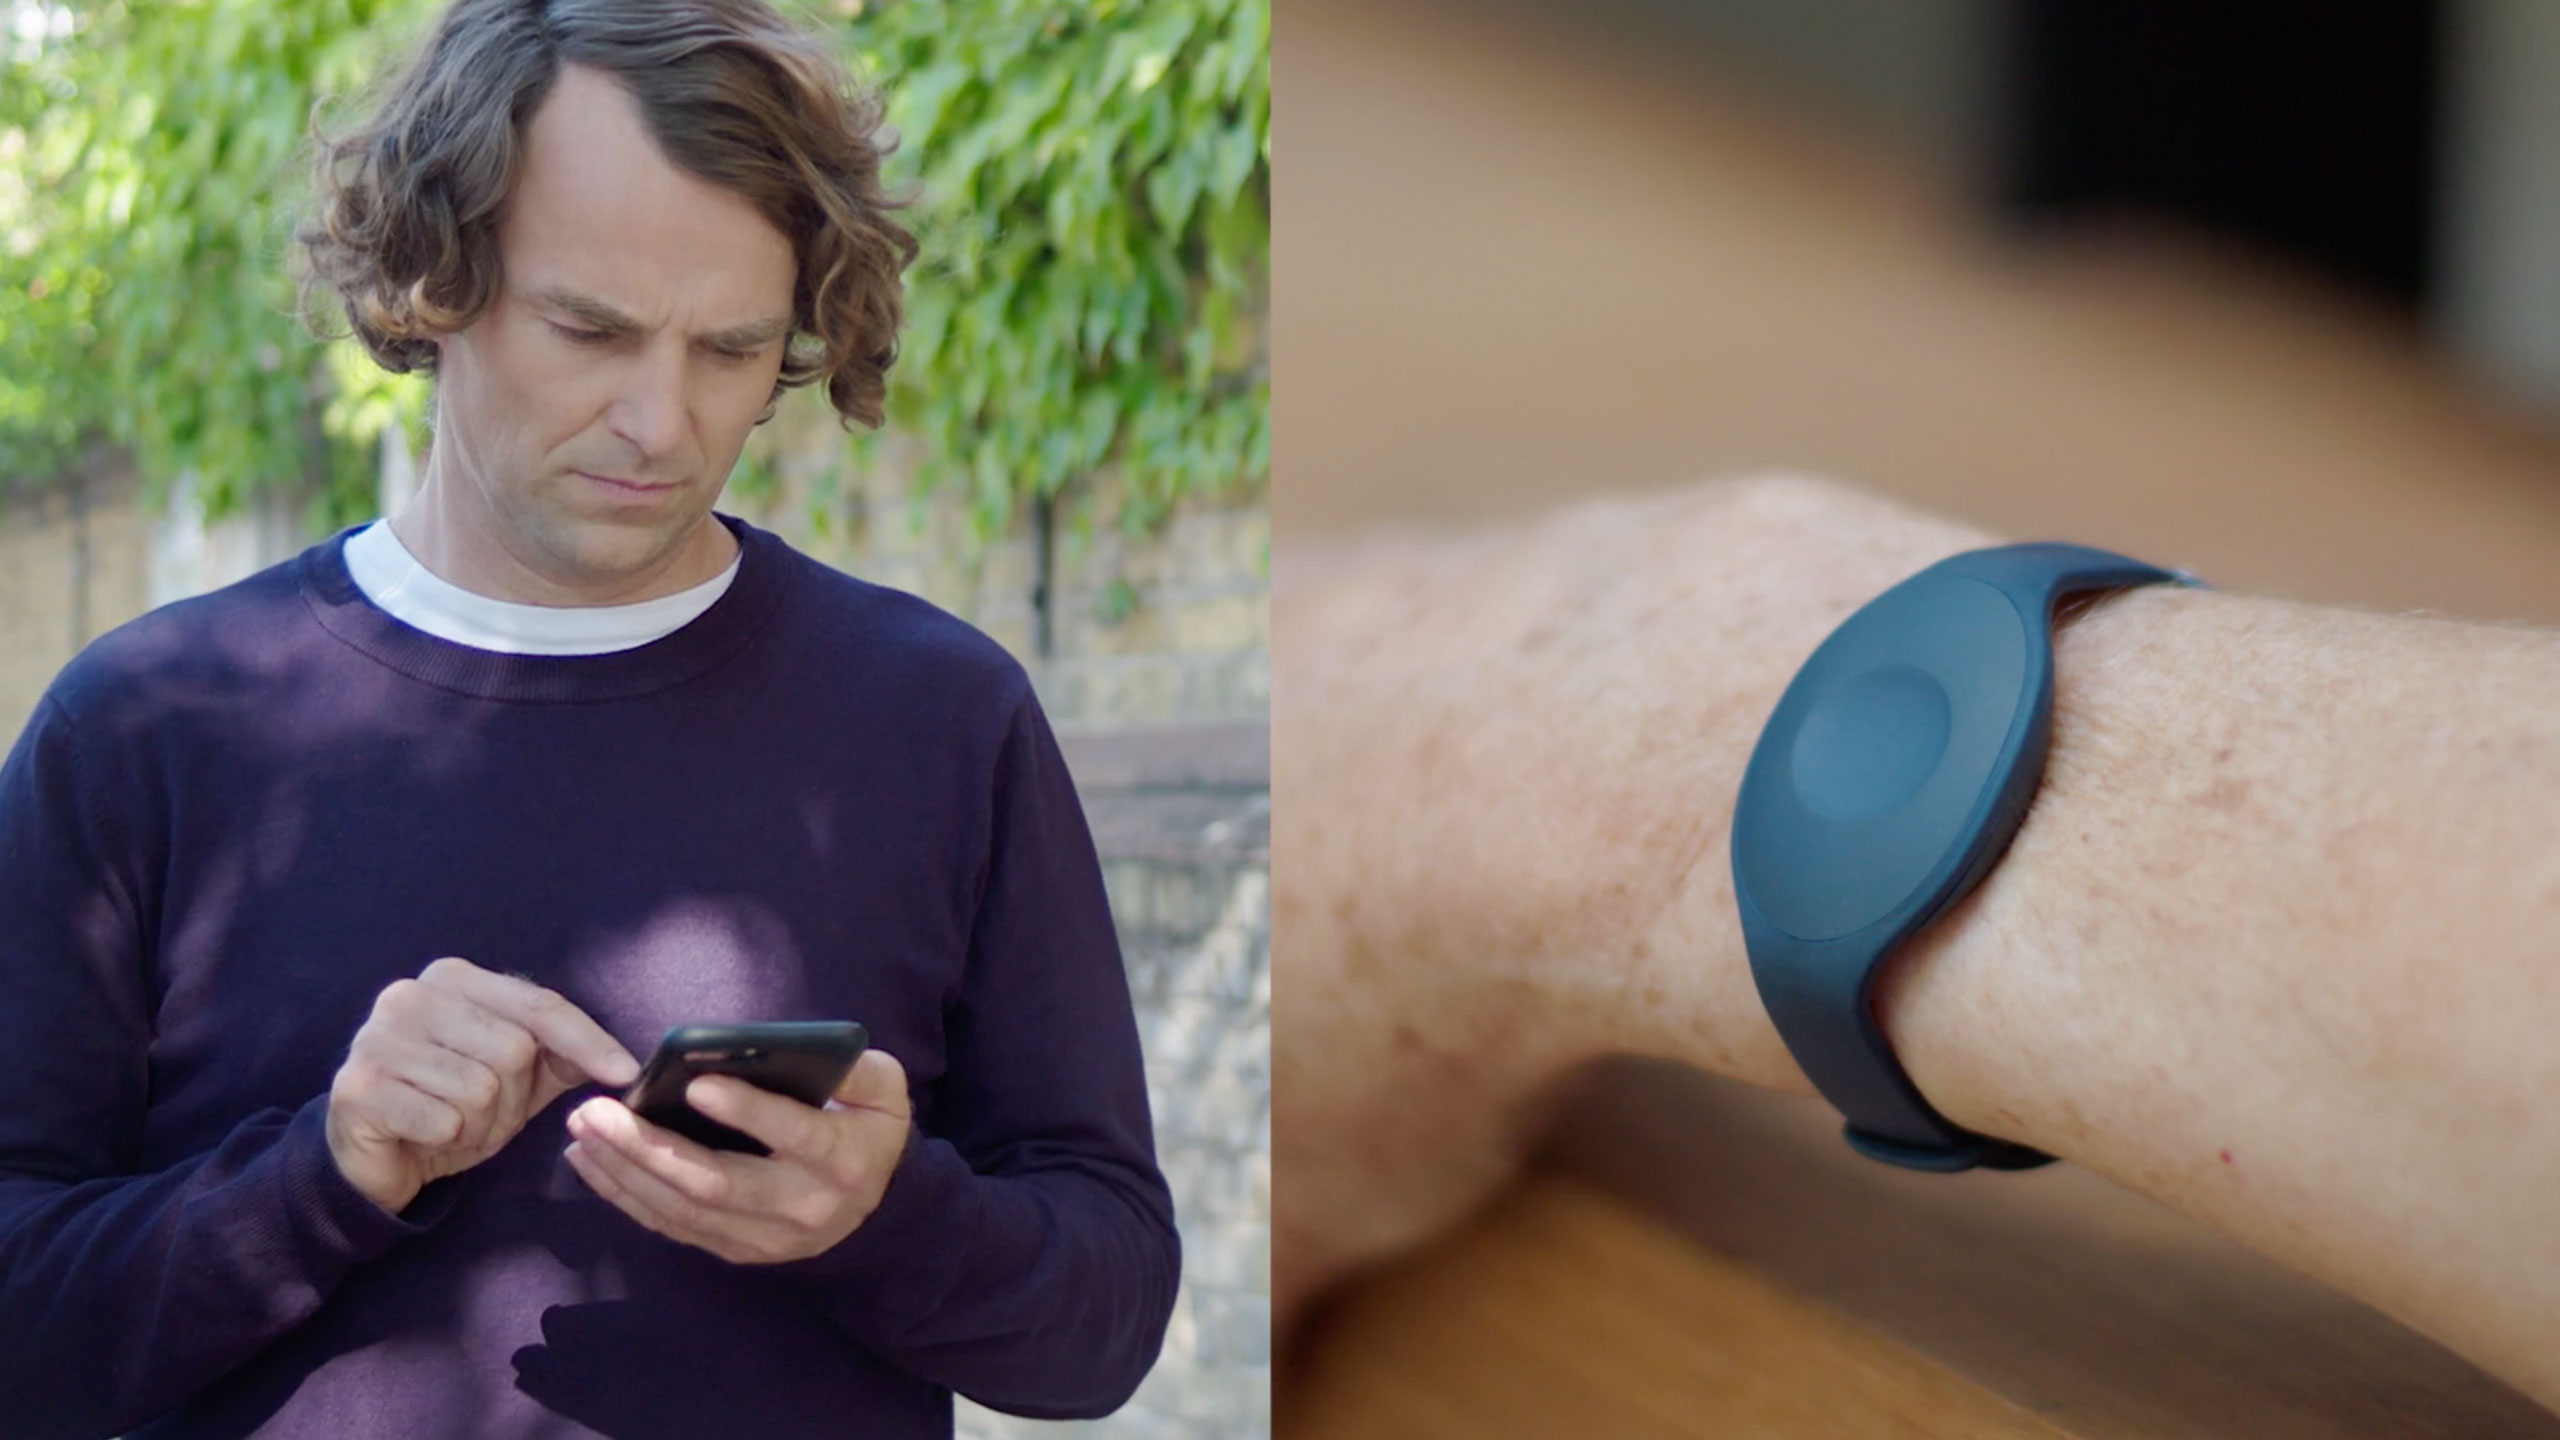 A split image. On the left, a caring son checking notifications in the Nectarine Health mobile app. On the right, his mum's wrist with an elegant Nectarine Health wristband